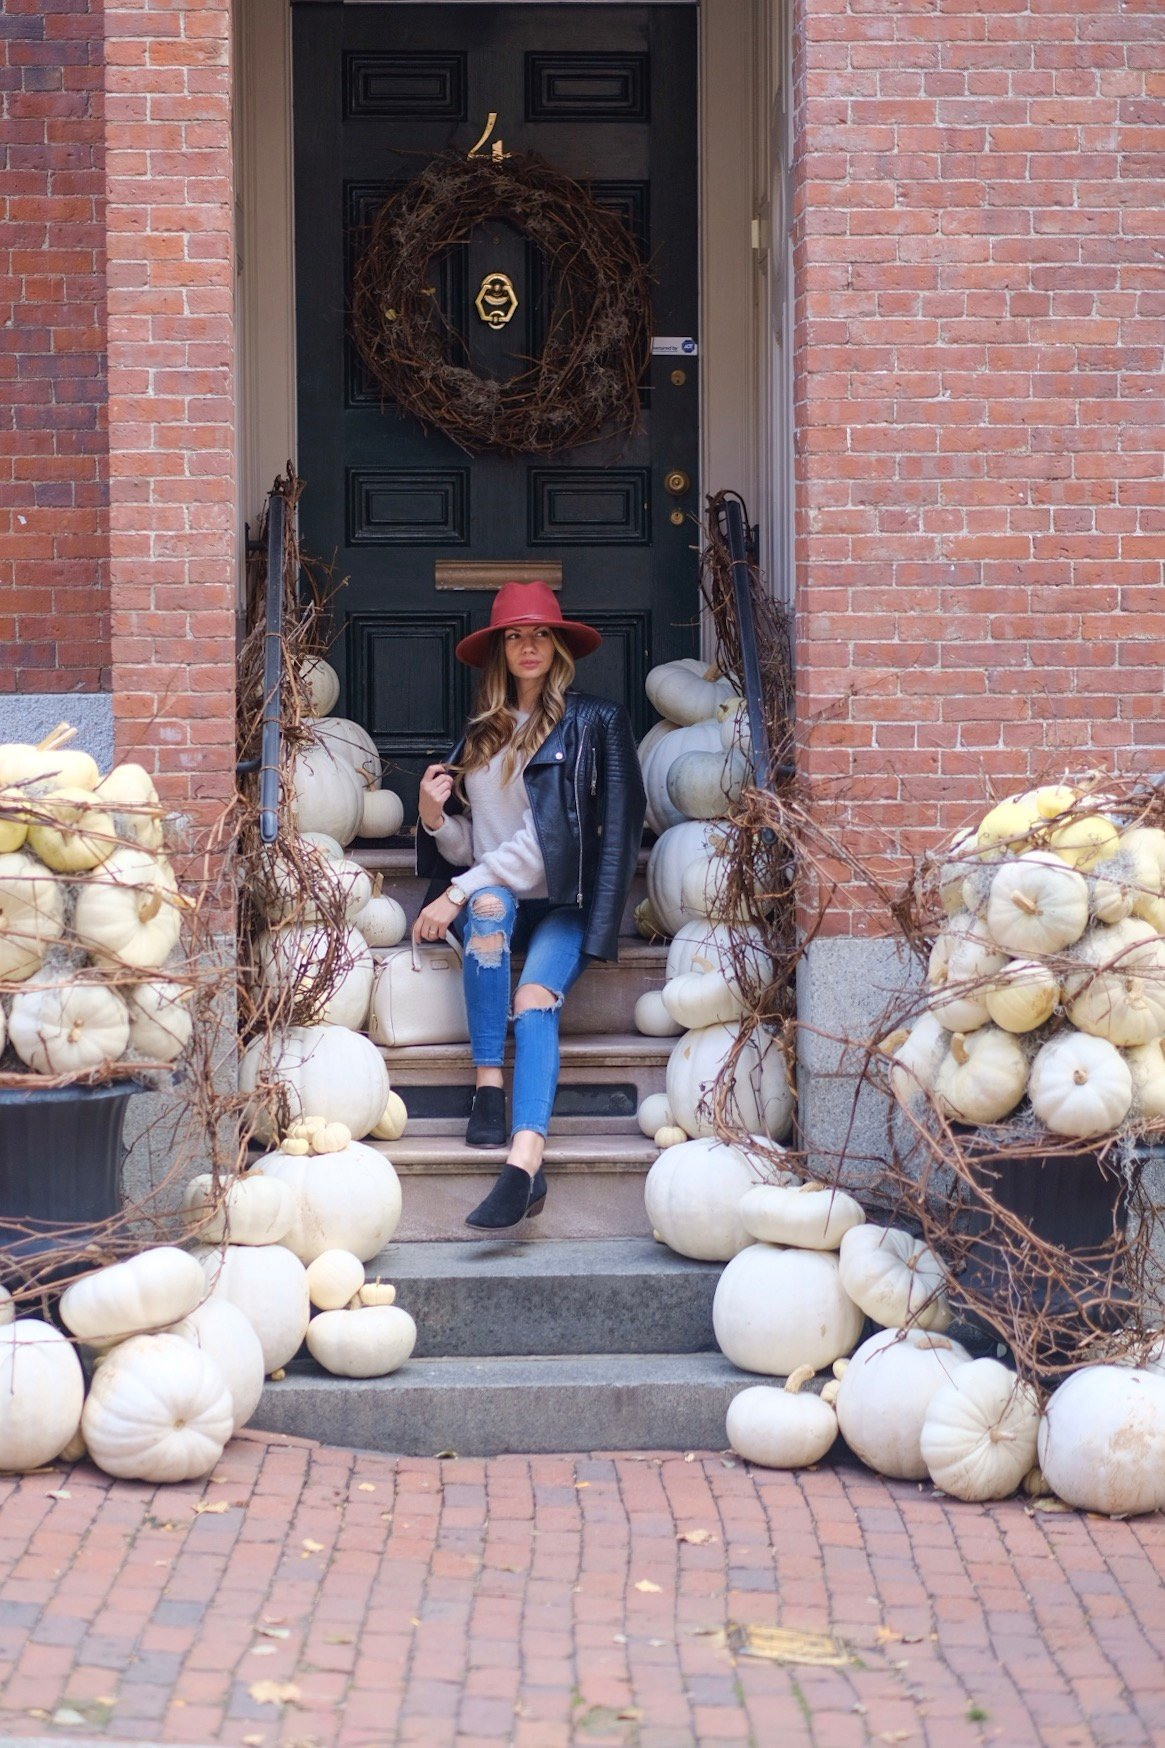 Lifestyle Blogger Chocolate & Lace shares her trip to Boston, MA in the fall